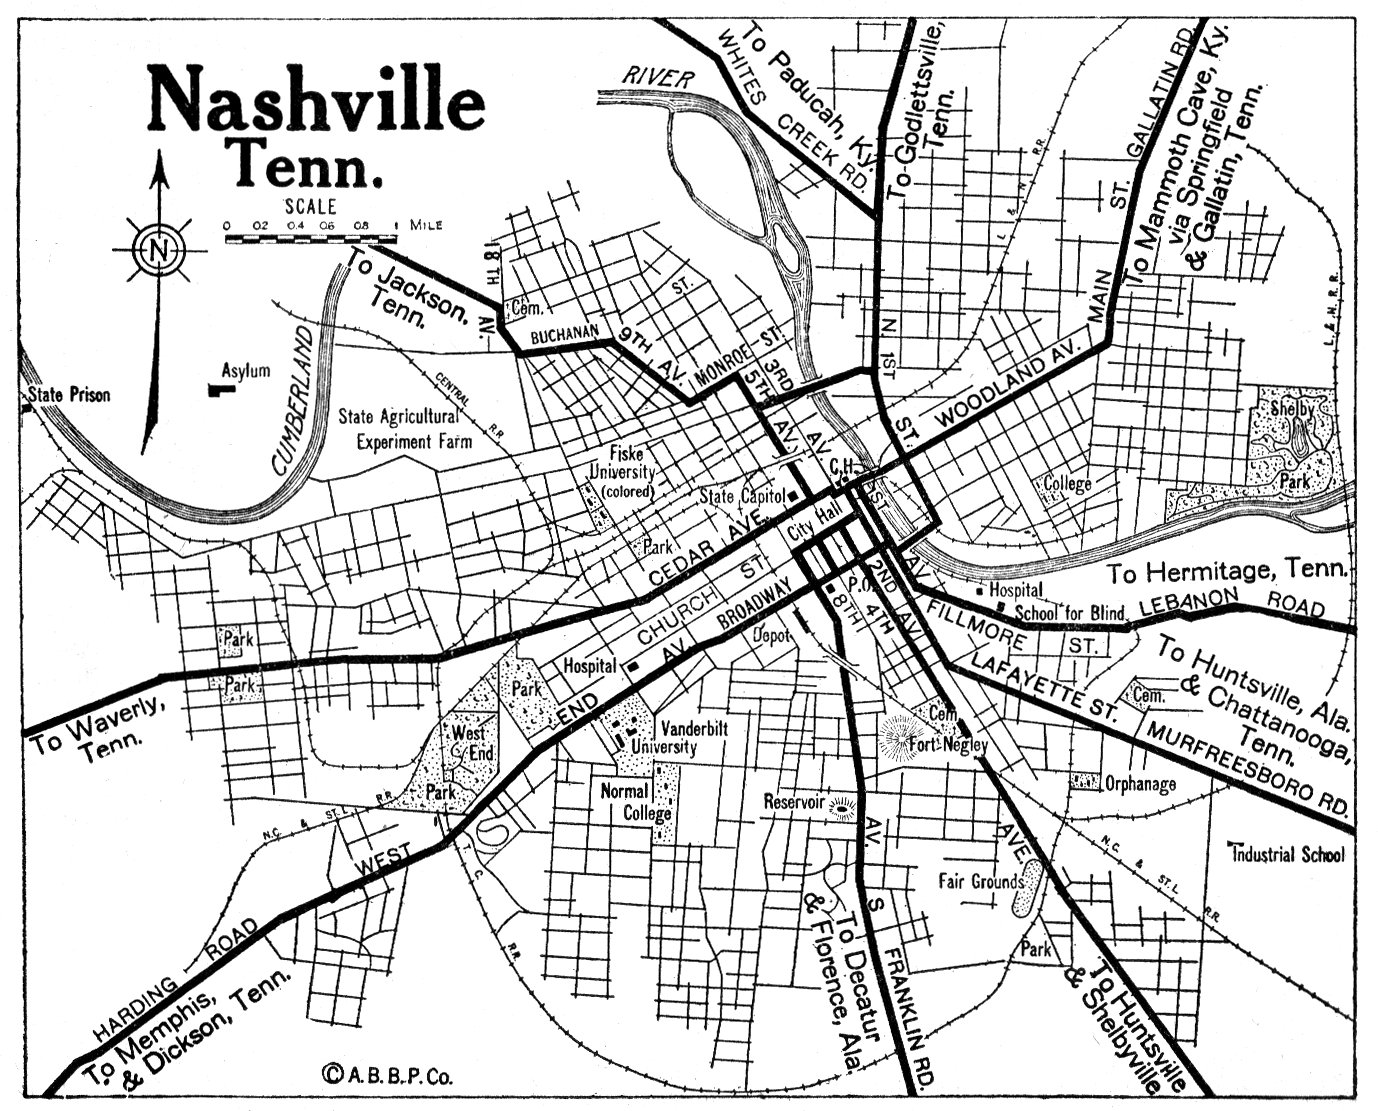 Nashville City Map - Nashville Tennessee • mappery on